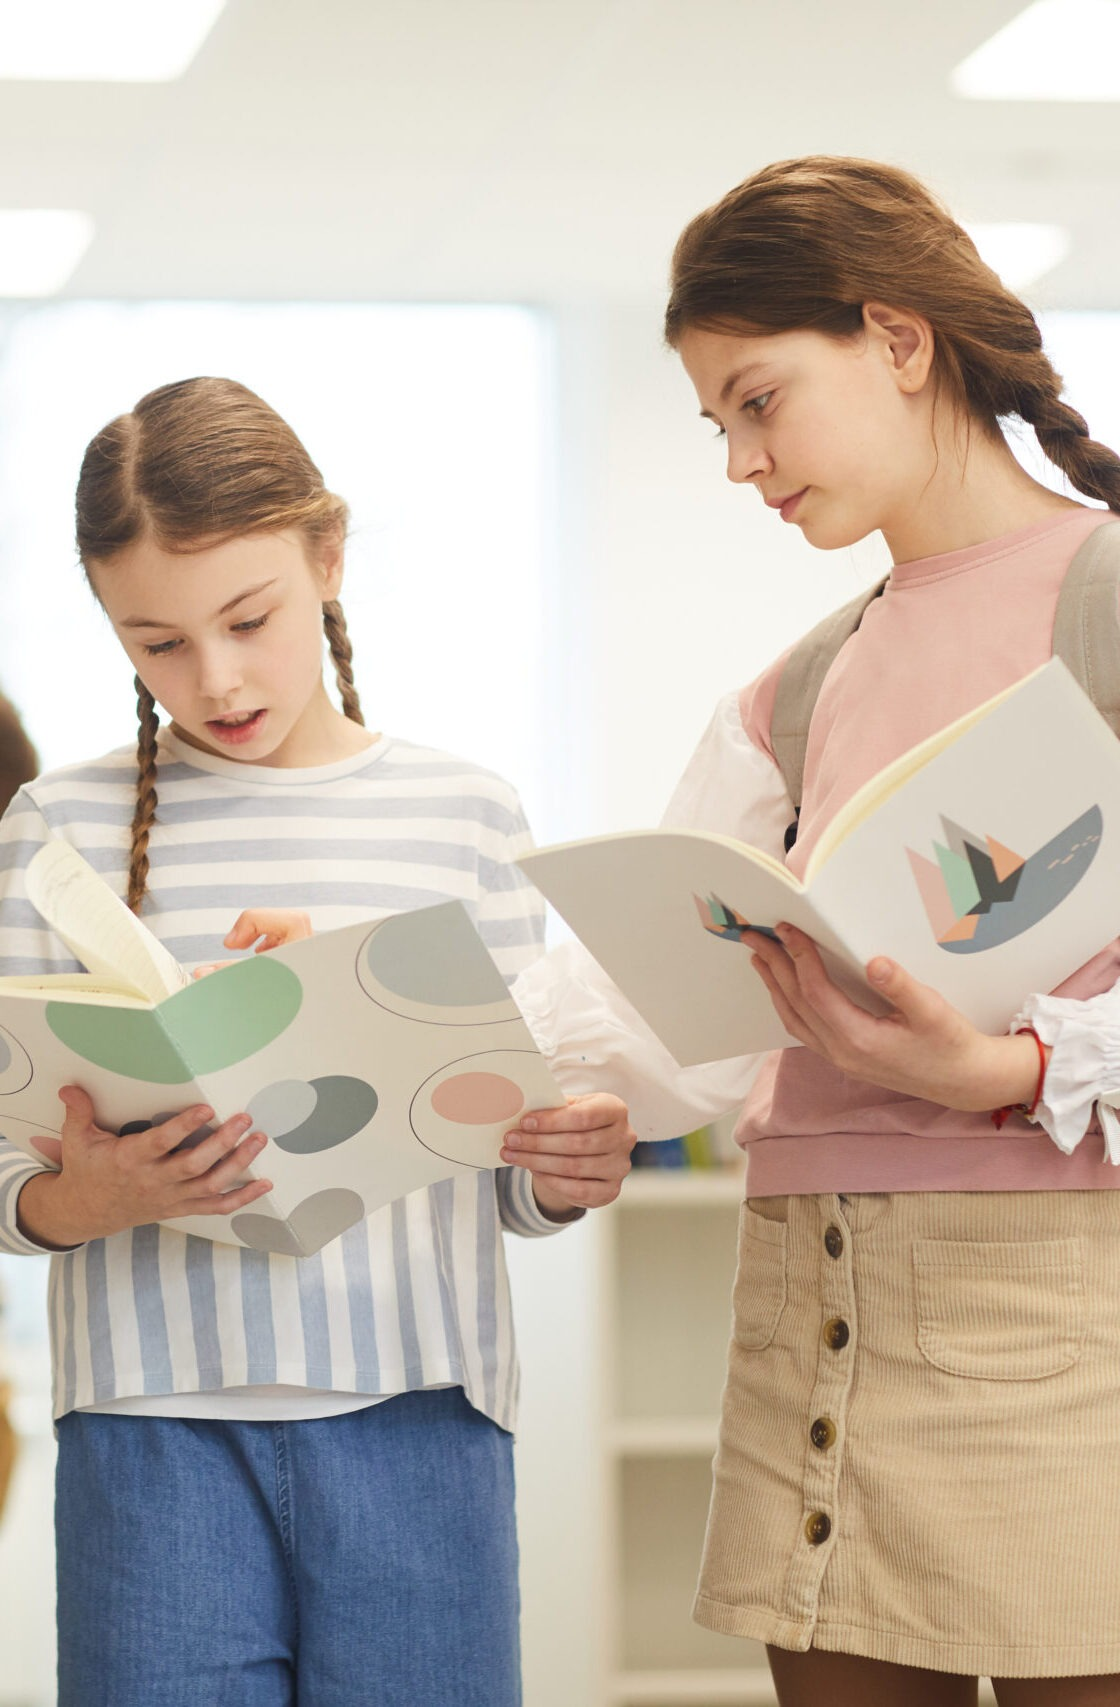 Teen schoolgirls standing together in modern school library with books talking about something, their classmates choosing books behind them, horizontal medium long shot, copy space